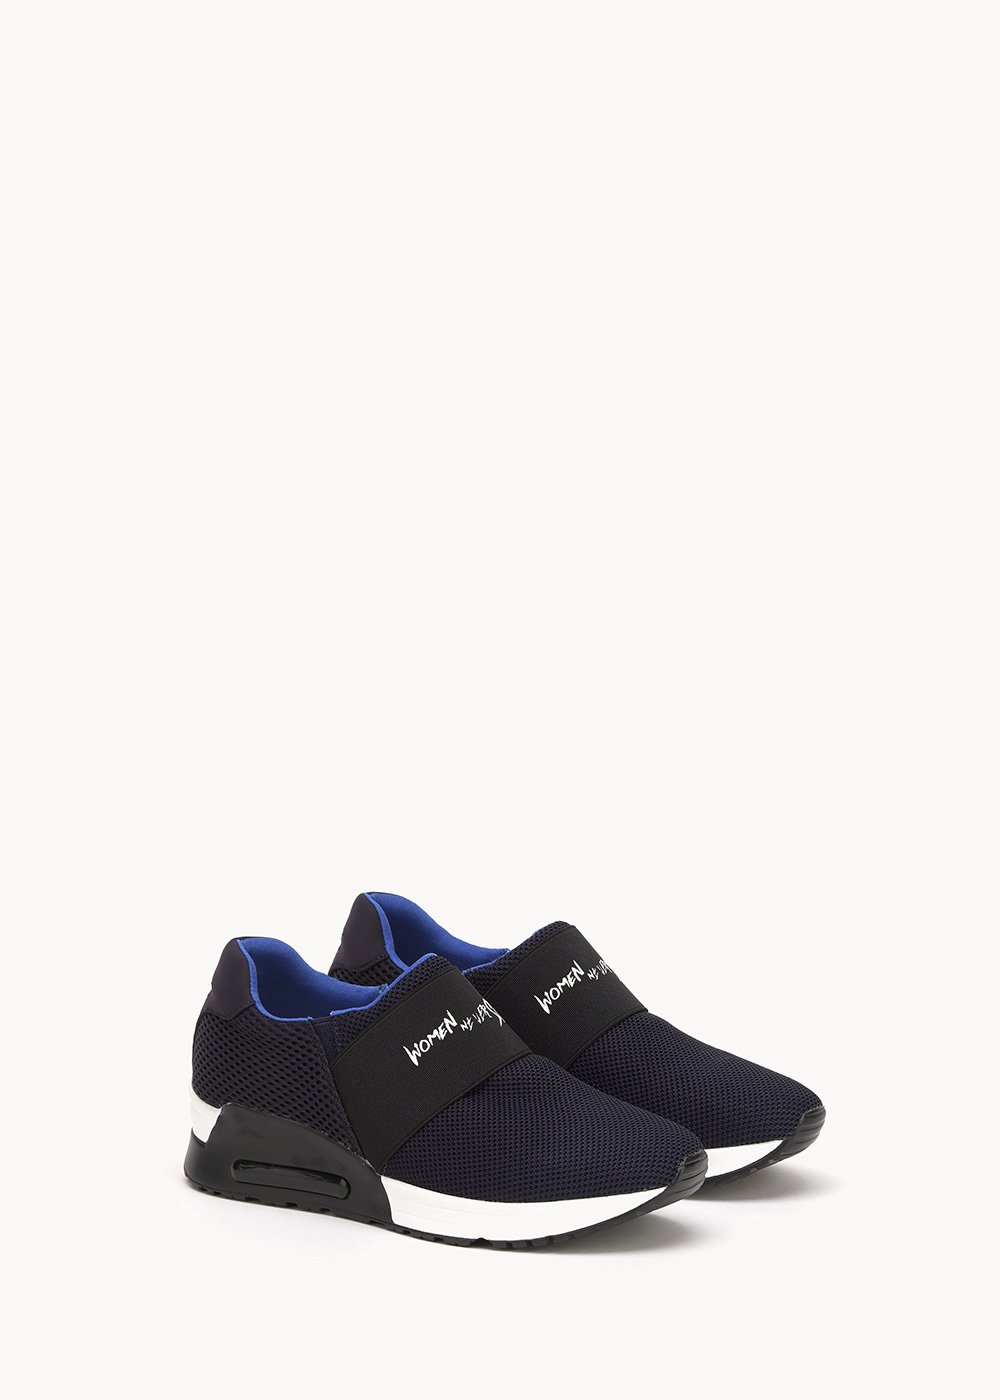 Sakir sneakers with elastic band - Medium Blue / Nettuno	 - Woman